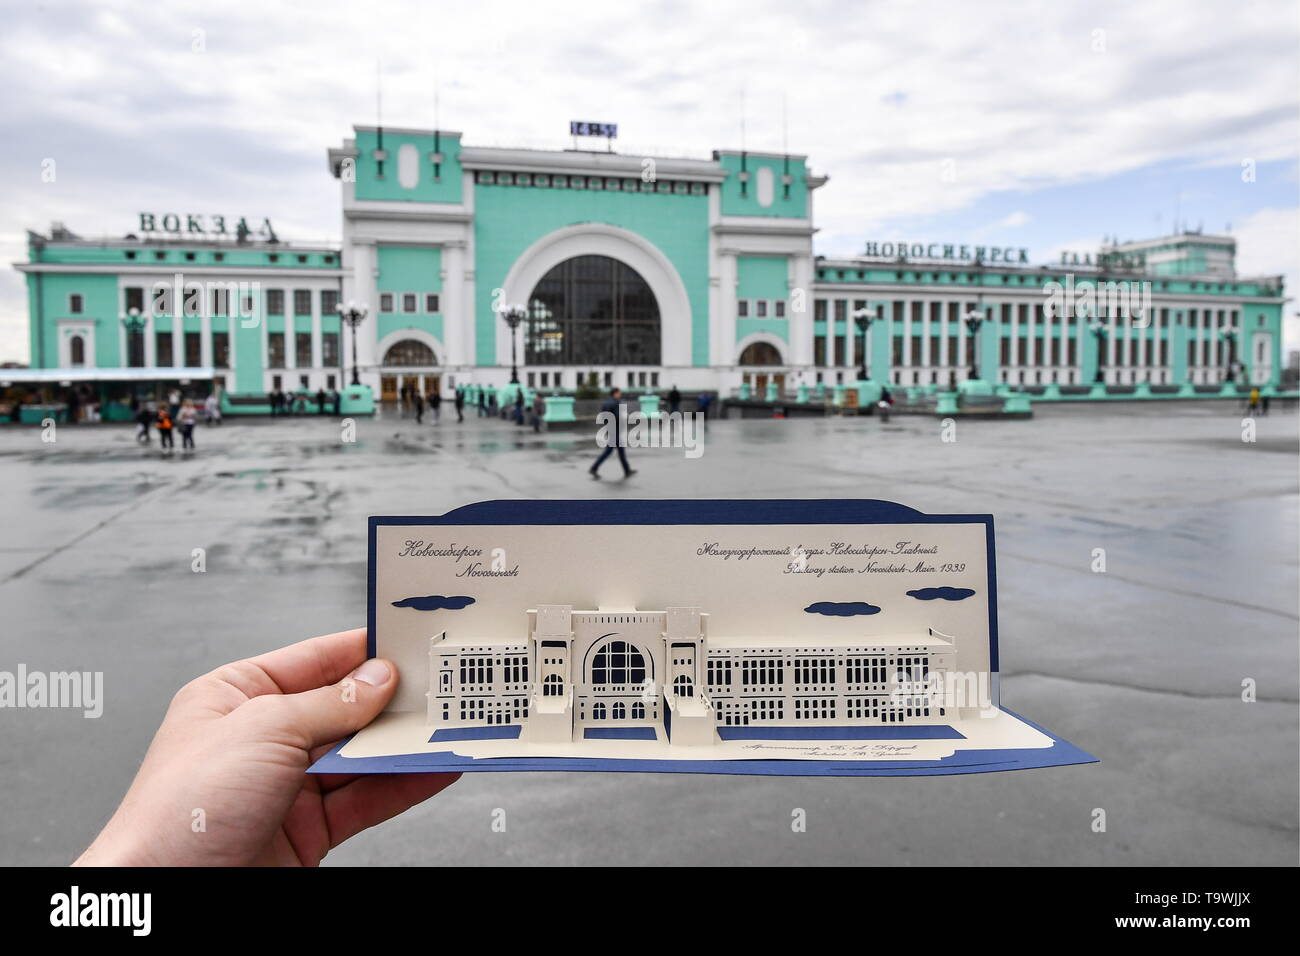 Novosibirsk, Russia. 21st May, 2019. NOVOSIBIRSK, RUSSIA - MAY 21, 2019: Comparing the Novosibirsk Railway Station building and its Kirigami postcard model made by architect Nikita Kutenkov at home; Kirigami is an art of creative paper cutting and folding. Kirill Kukhmar/TASS Credit: ITAR-TASS News Agency/Alamy Live News - Stock Image